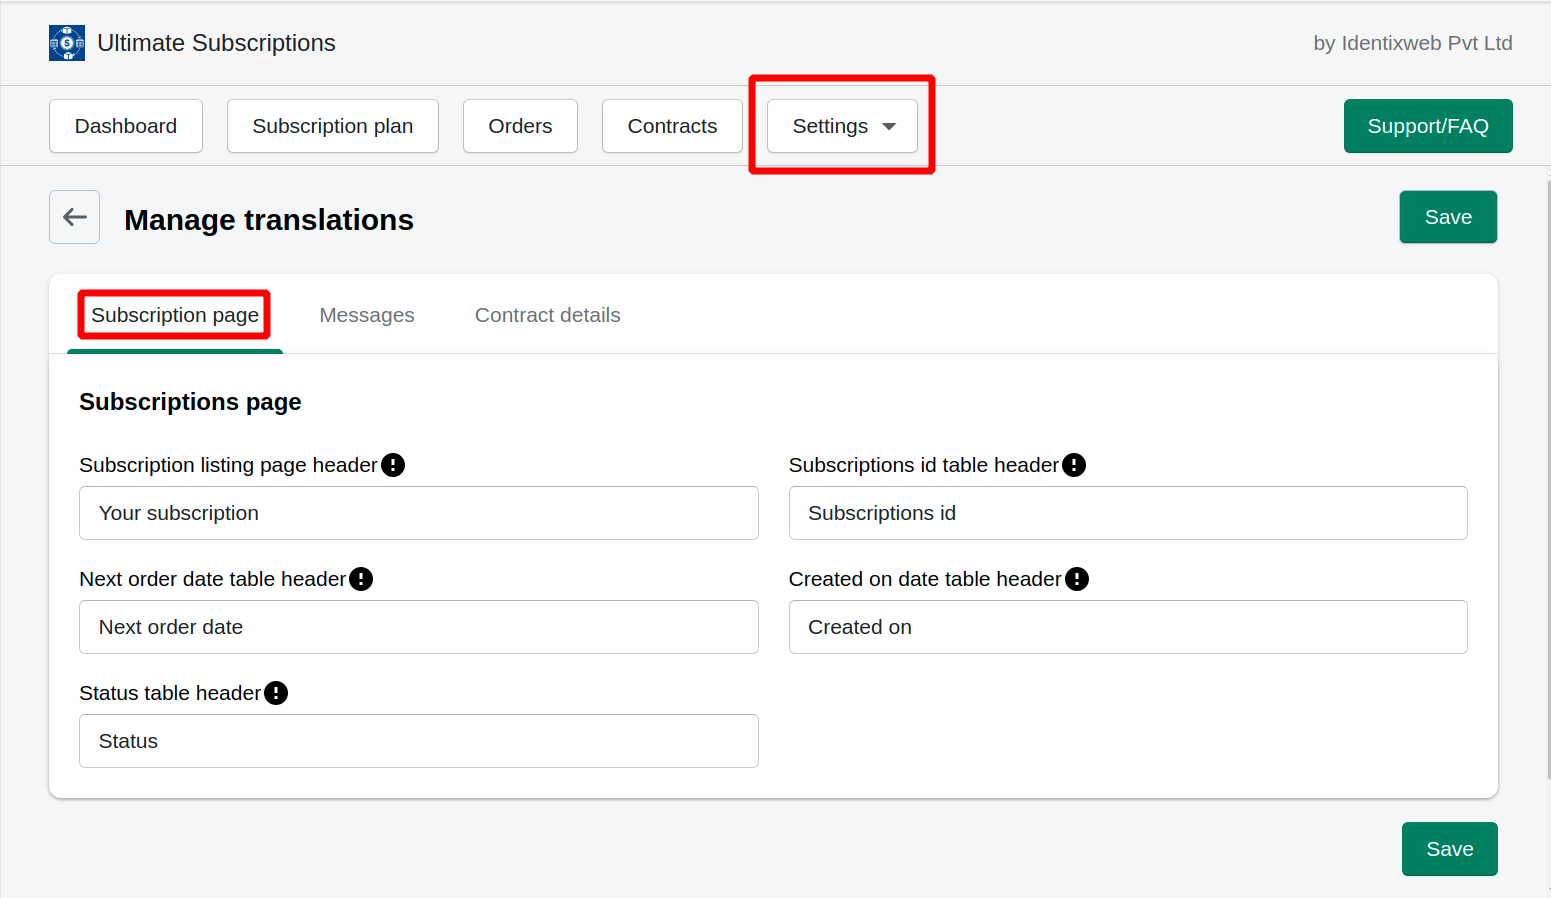 manage-translations-subscriptions-page